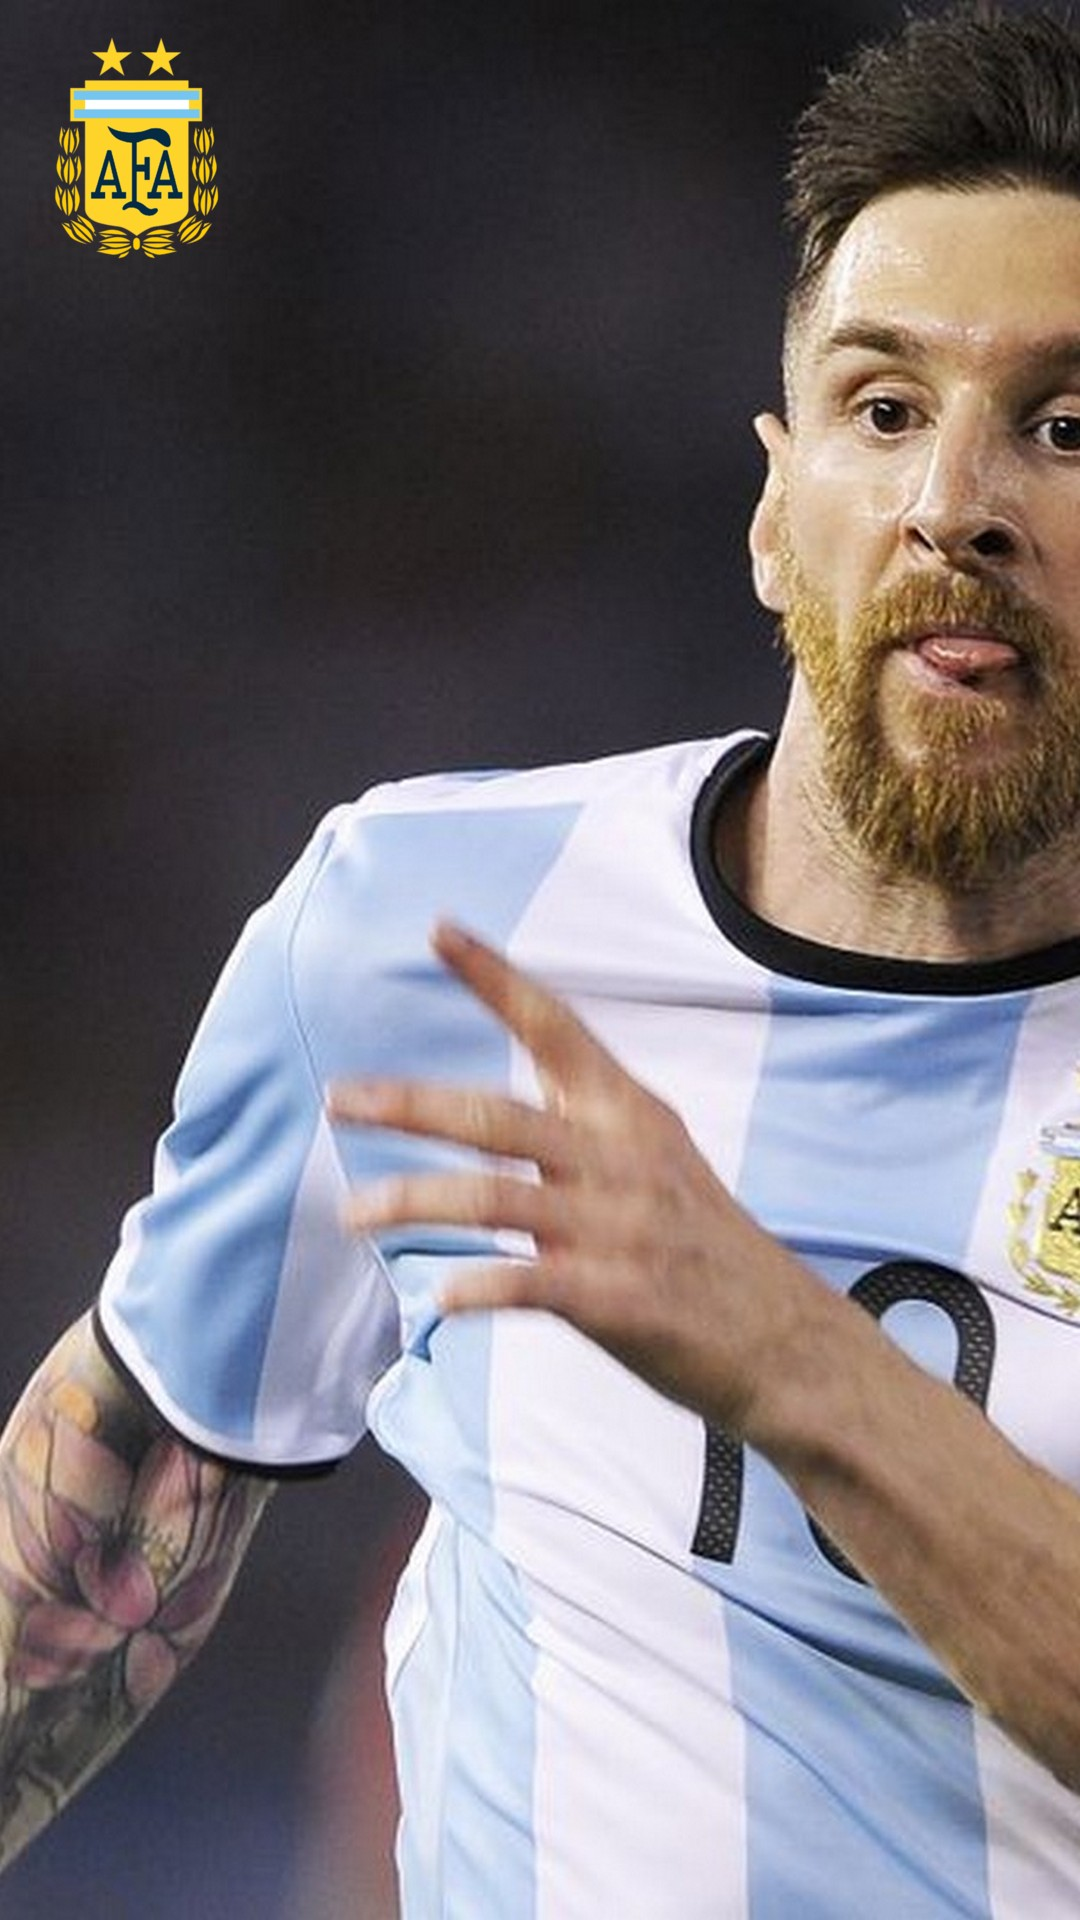 Messi Hd Wallpapers Argentina , HD Wallpaper & Backgrounds